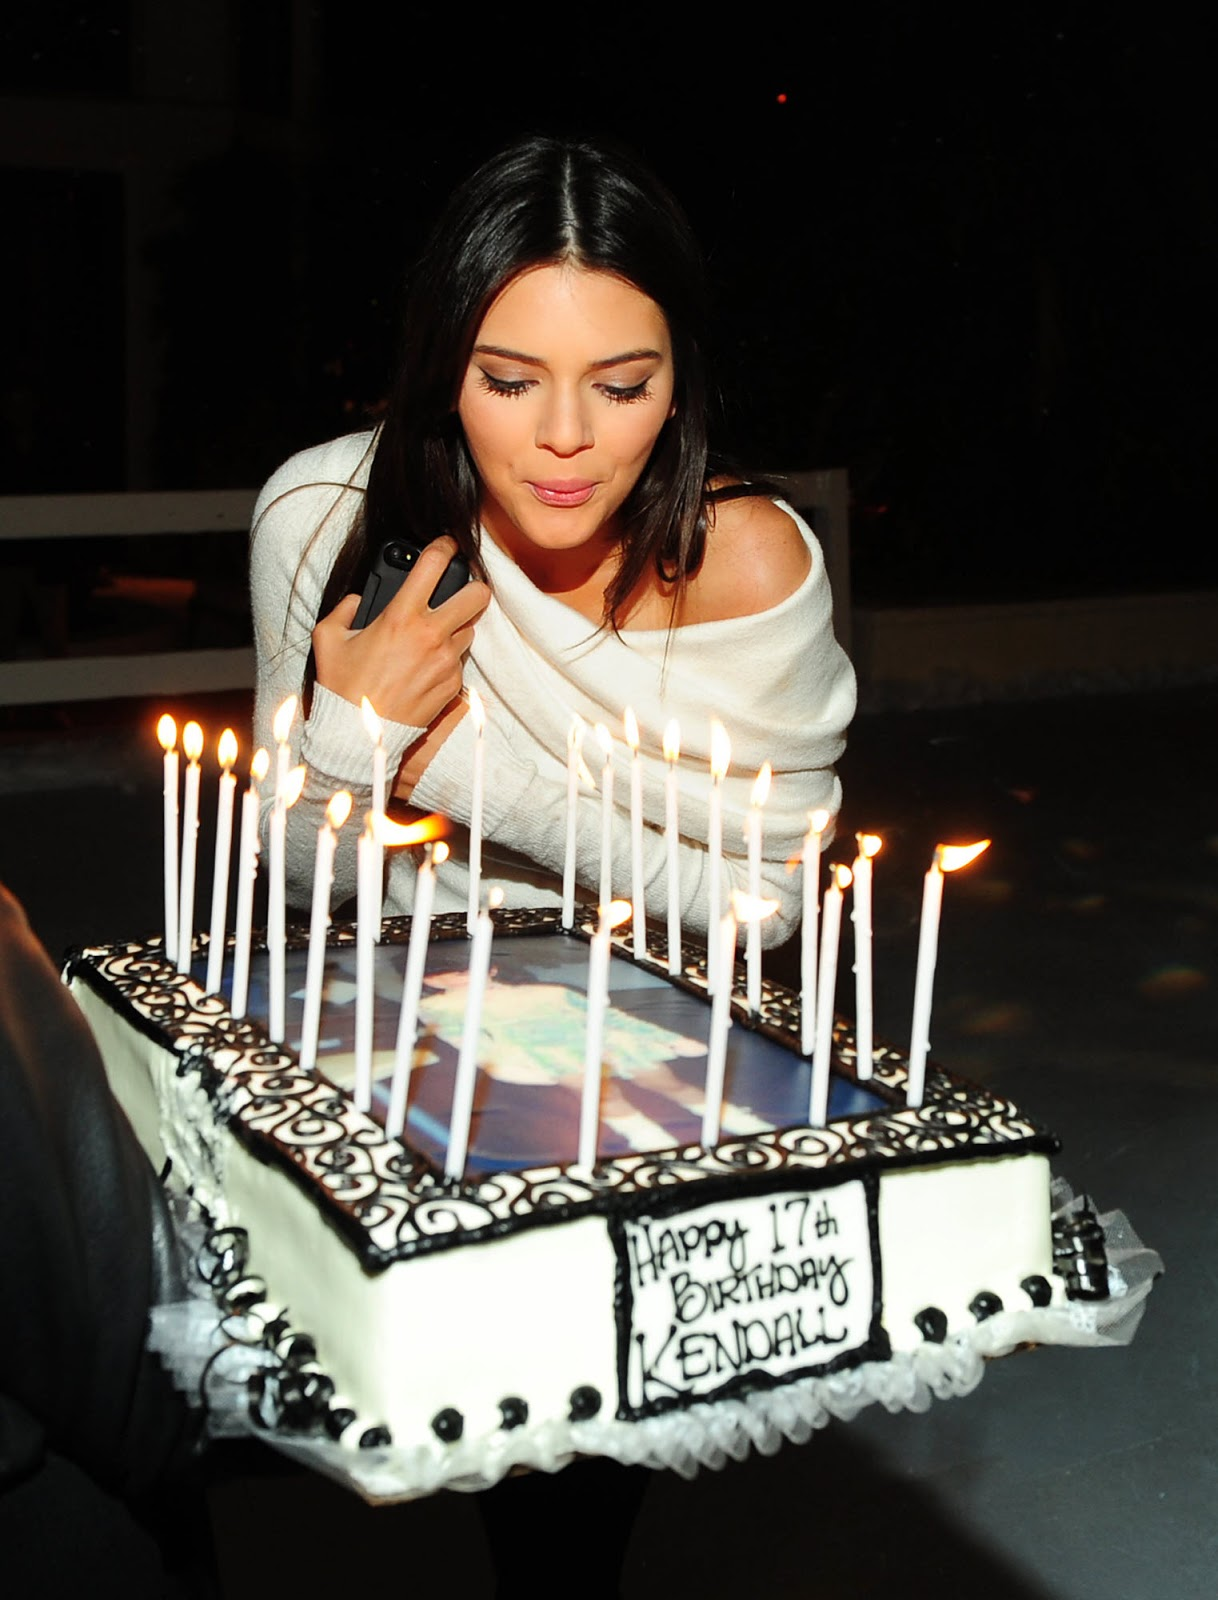 http://4.bp.blogspot.com/-QG32bGQeL28/UK-8Mh7fMcI/AAAAAAAAlmw/tdB-d9QjfRo/s1600/Kendall+Jenner+Celebrates+Her+17th+Birthday+in+LA+-+November+11%252C+2012+9.jpg